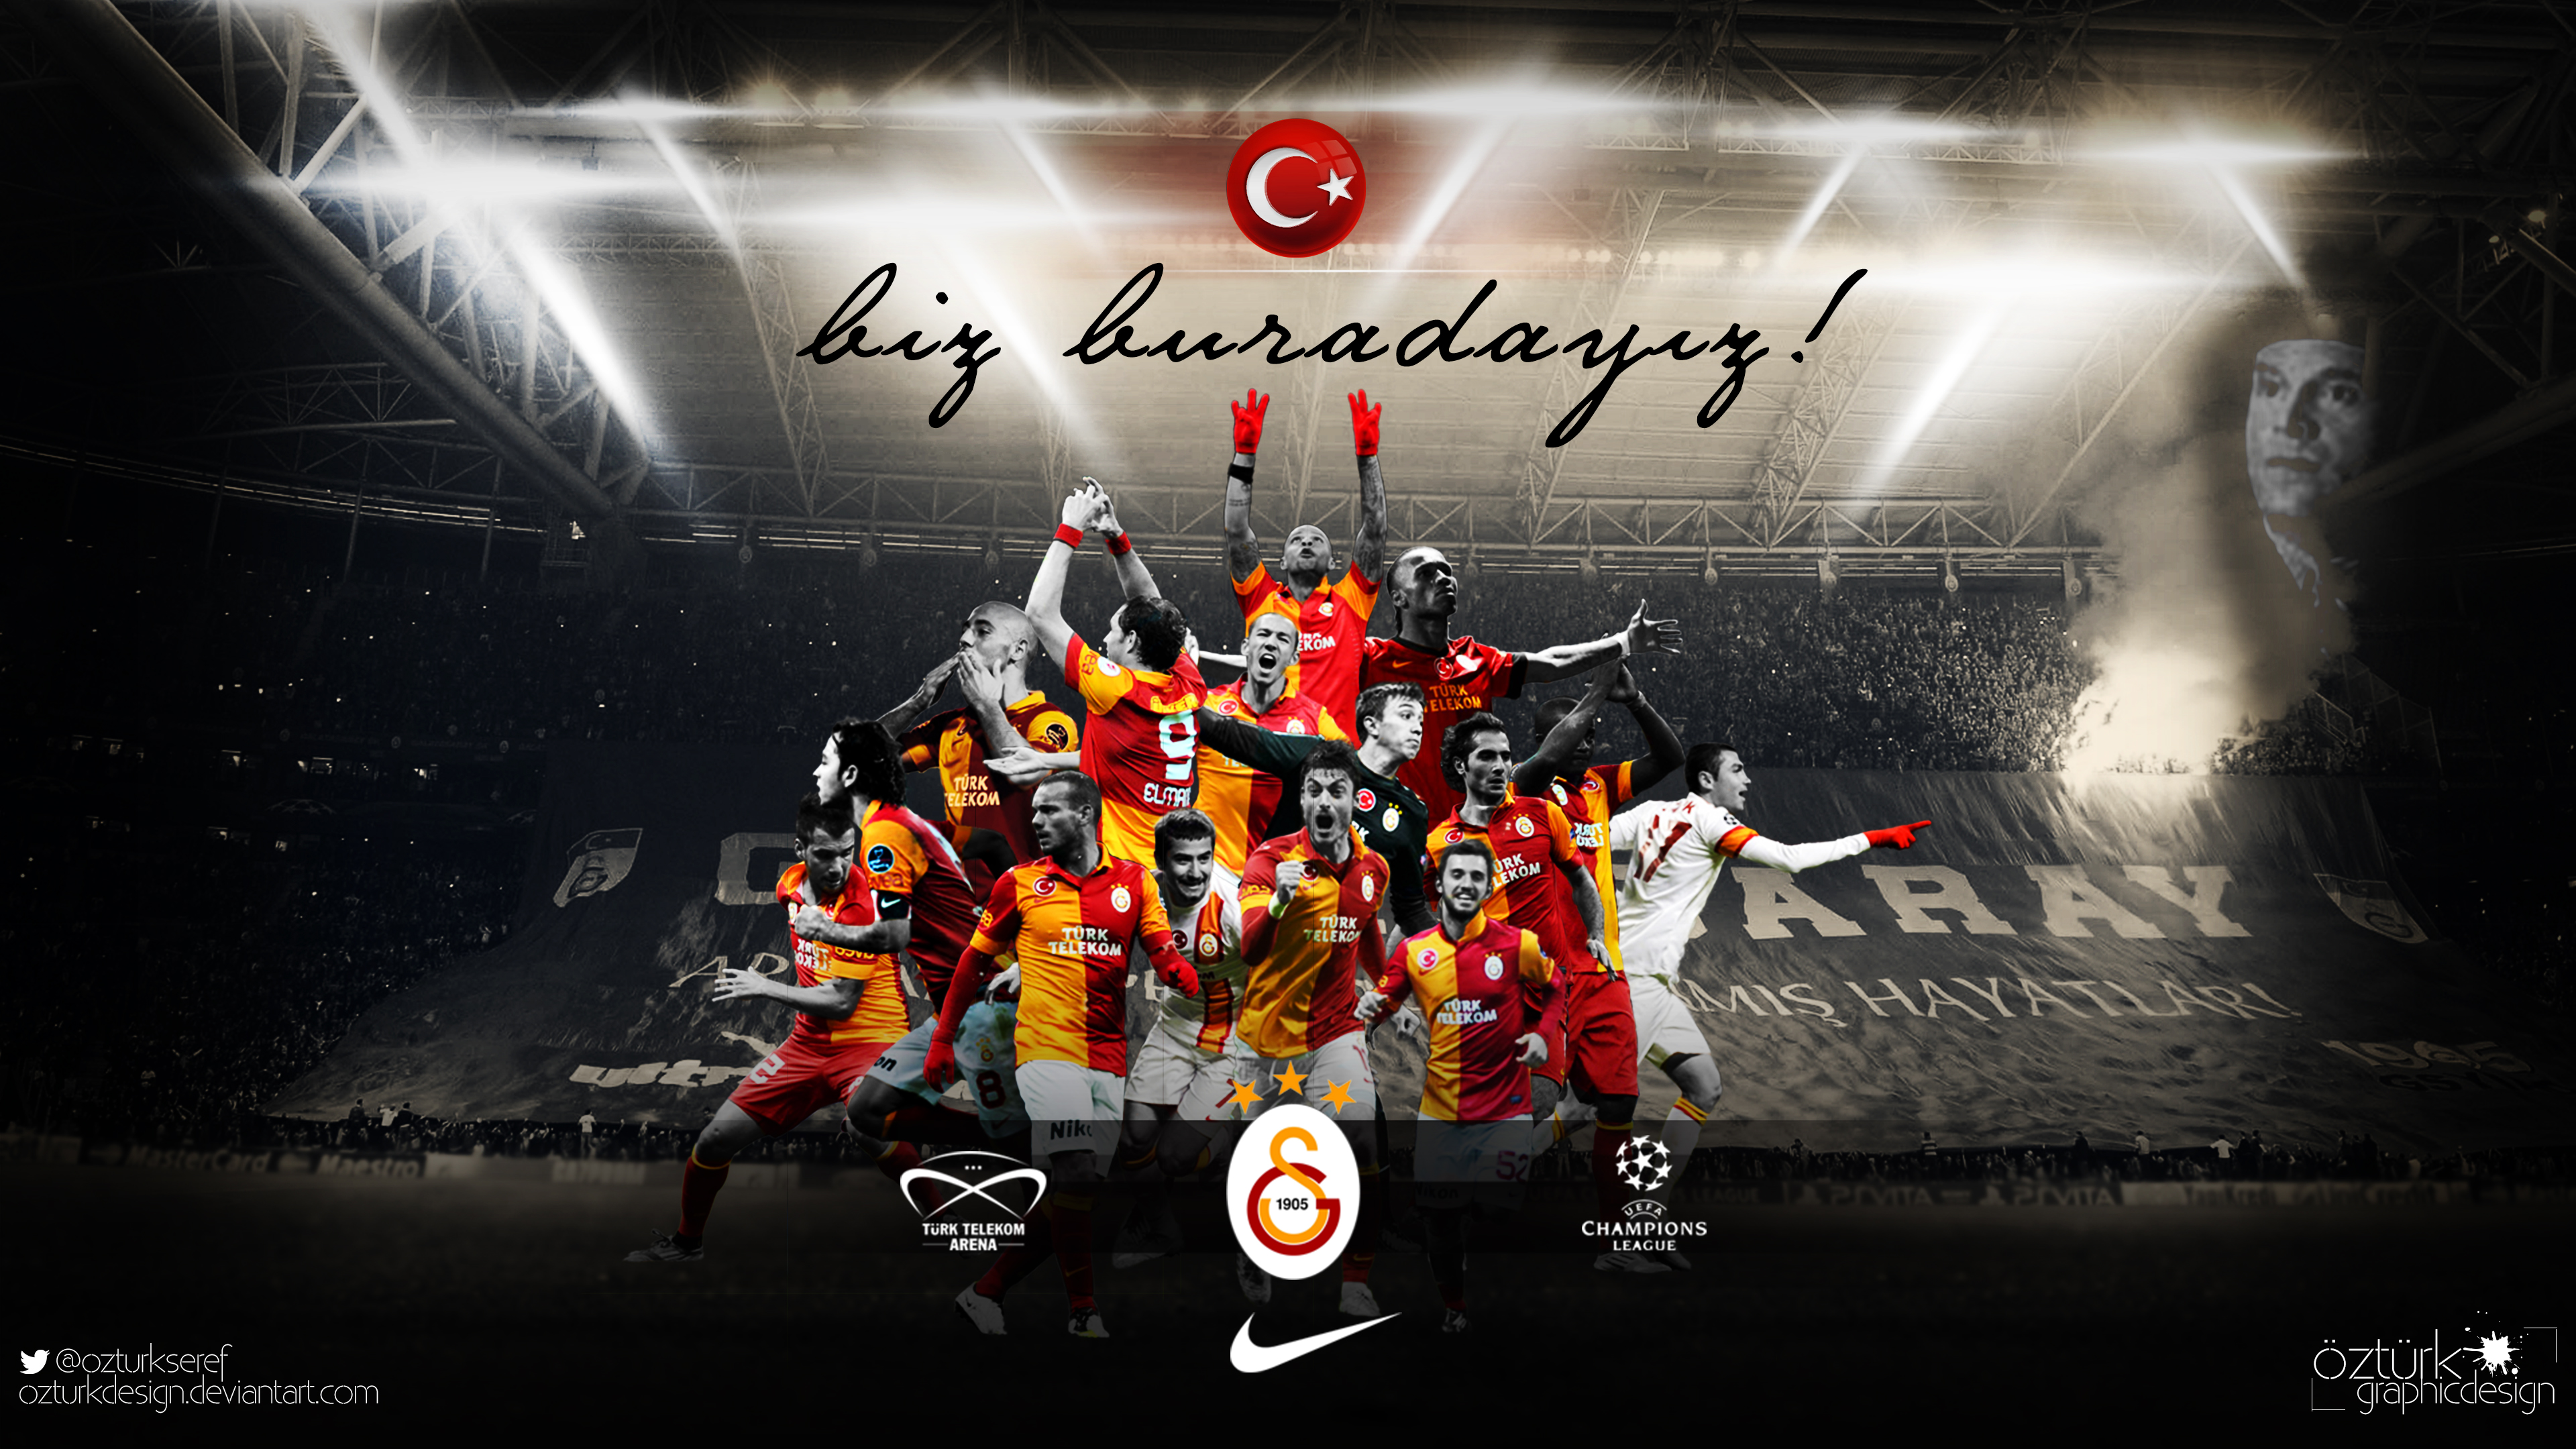 Galatasaray - We are here ! by ozturkdesign on DeviantArt